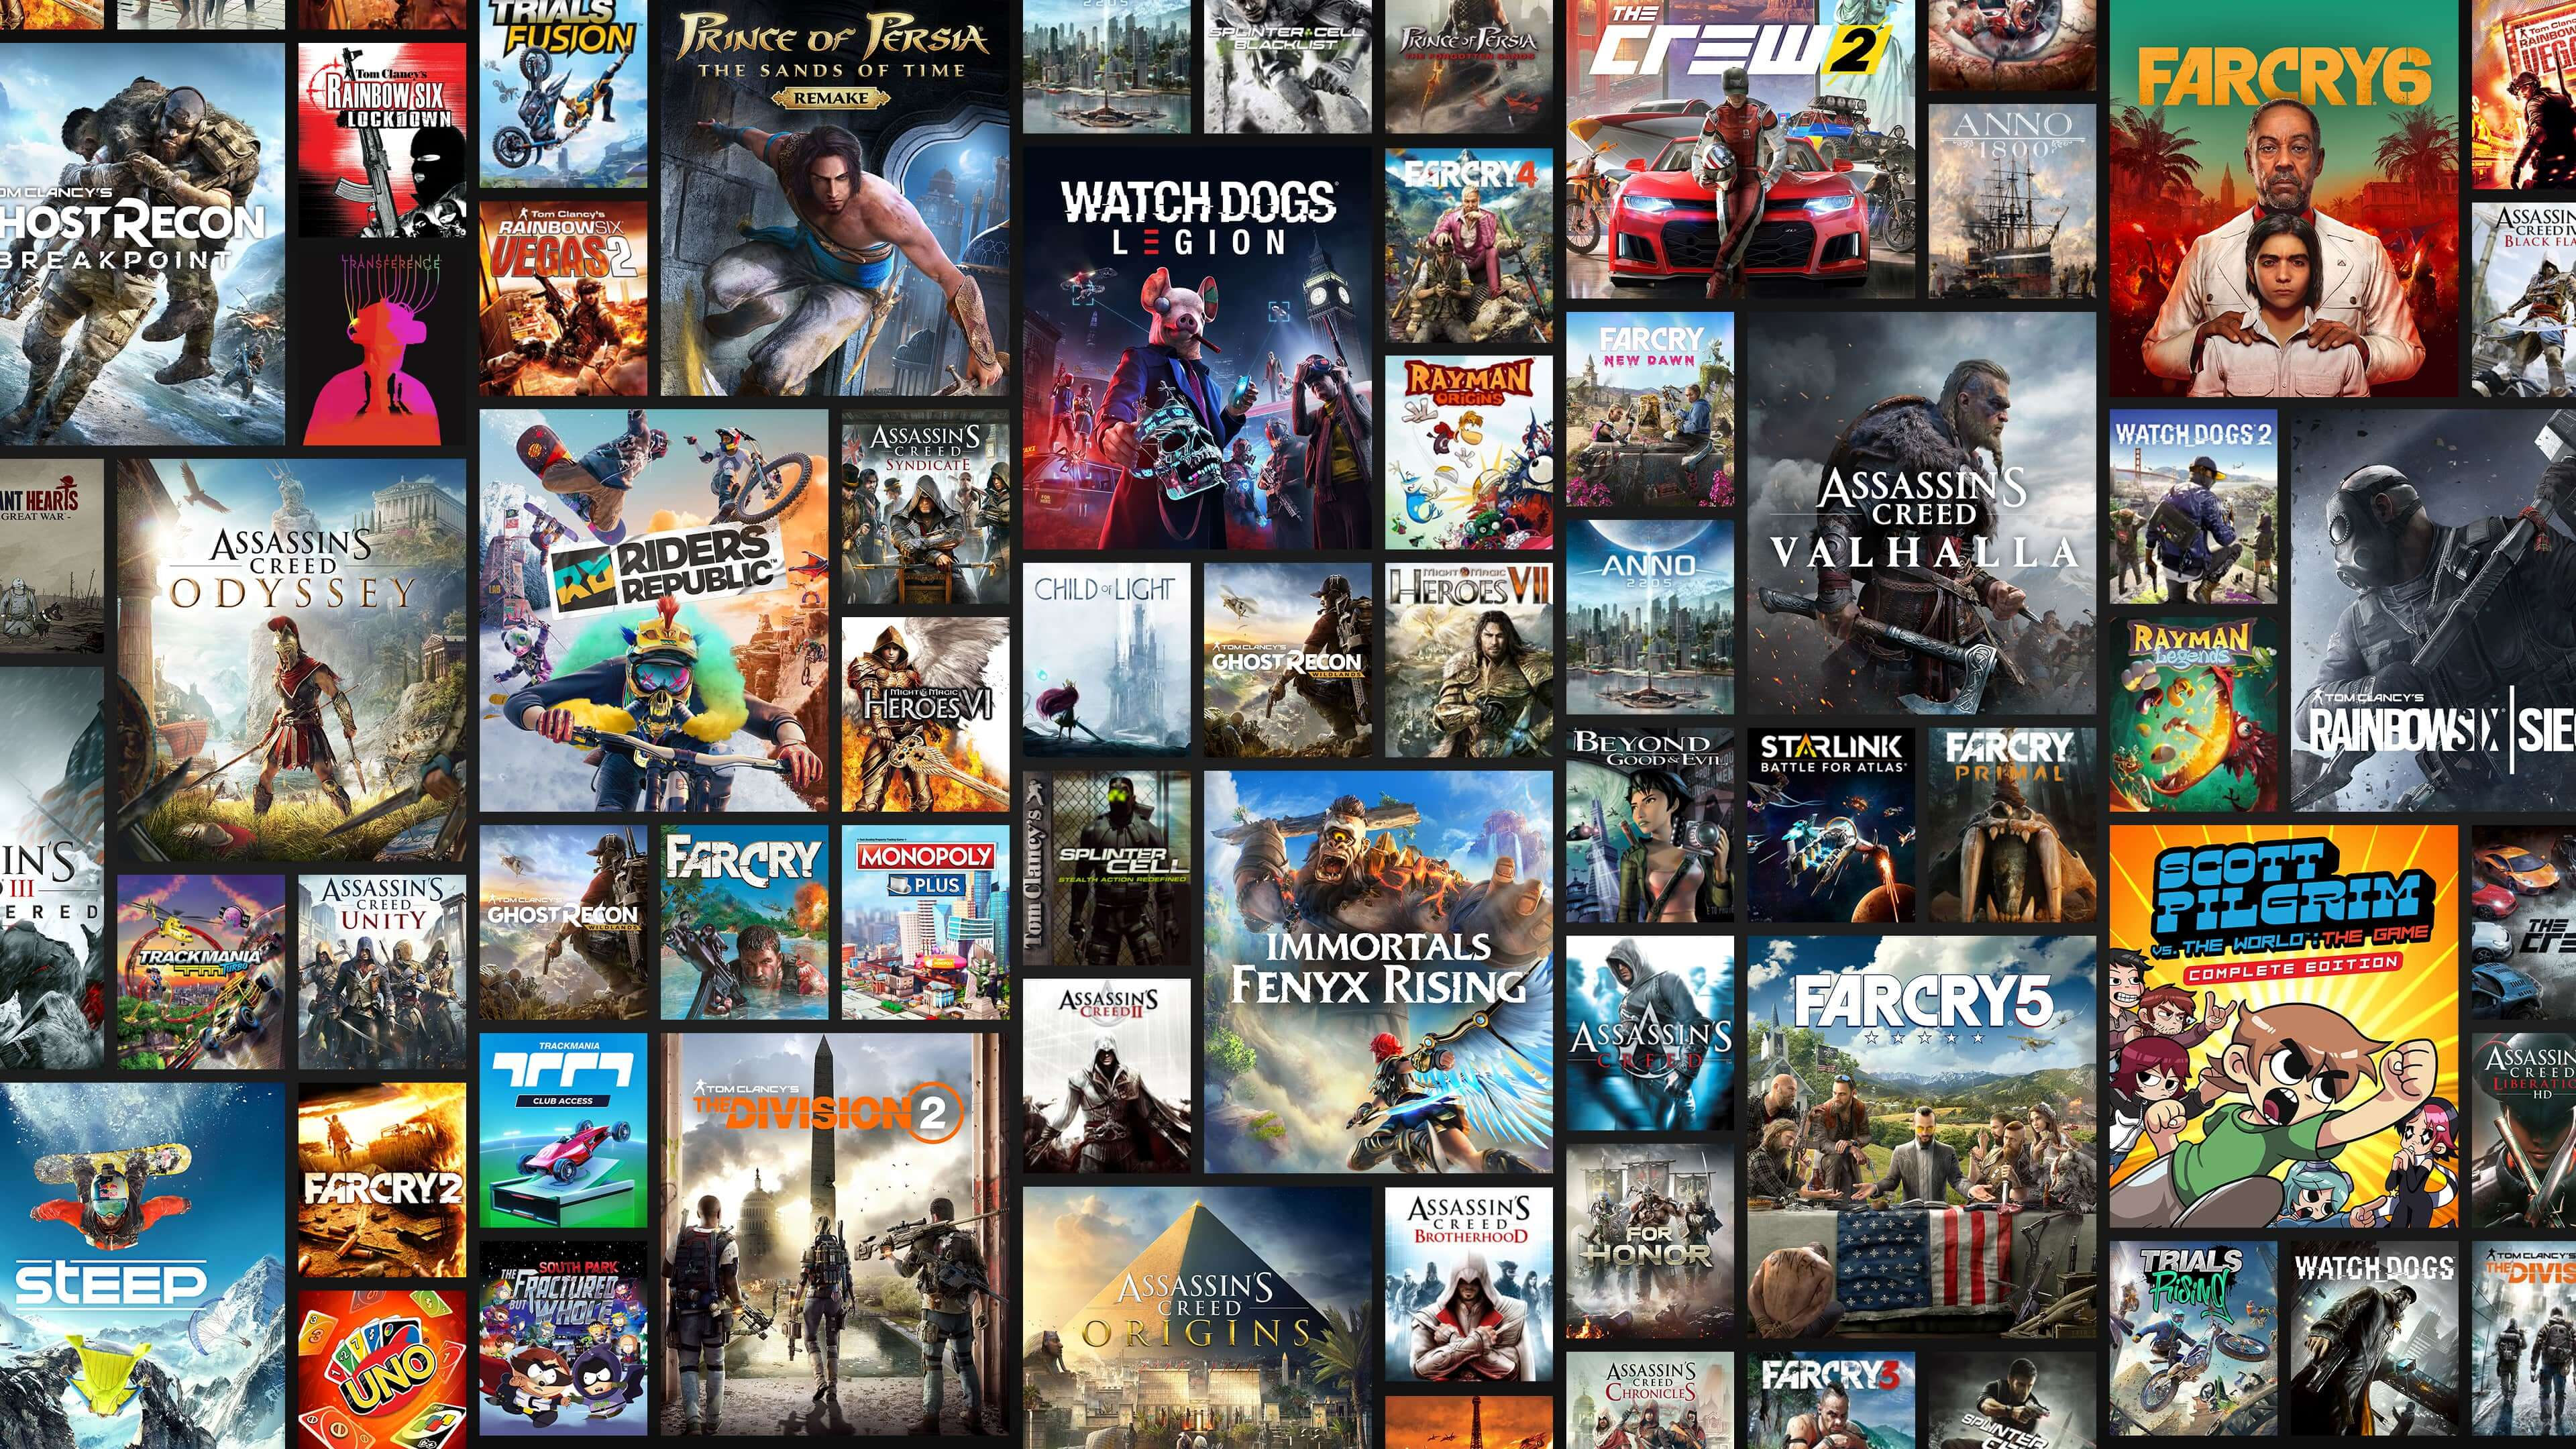 See the full list of games included with Ubisoft+